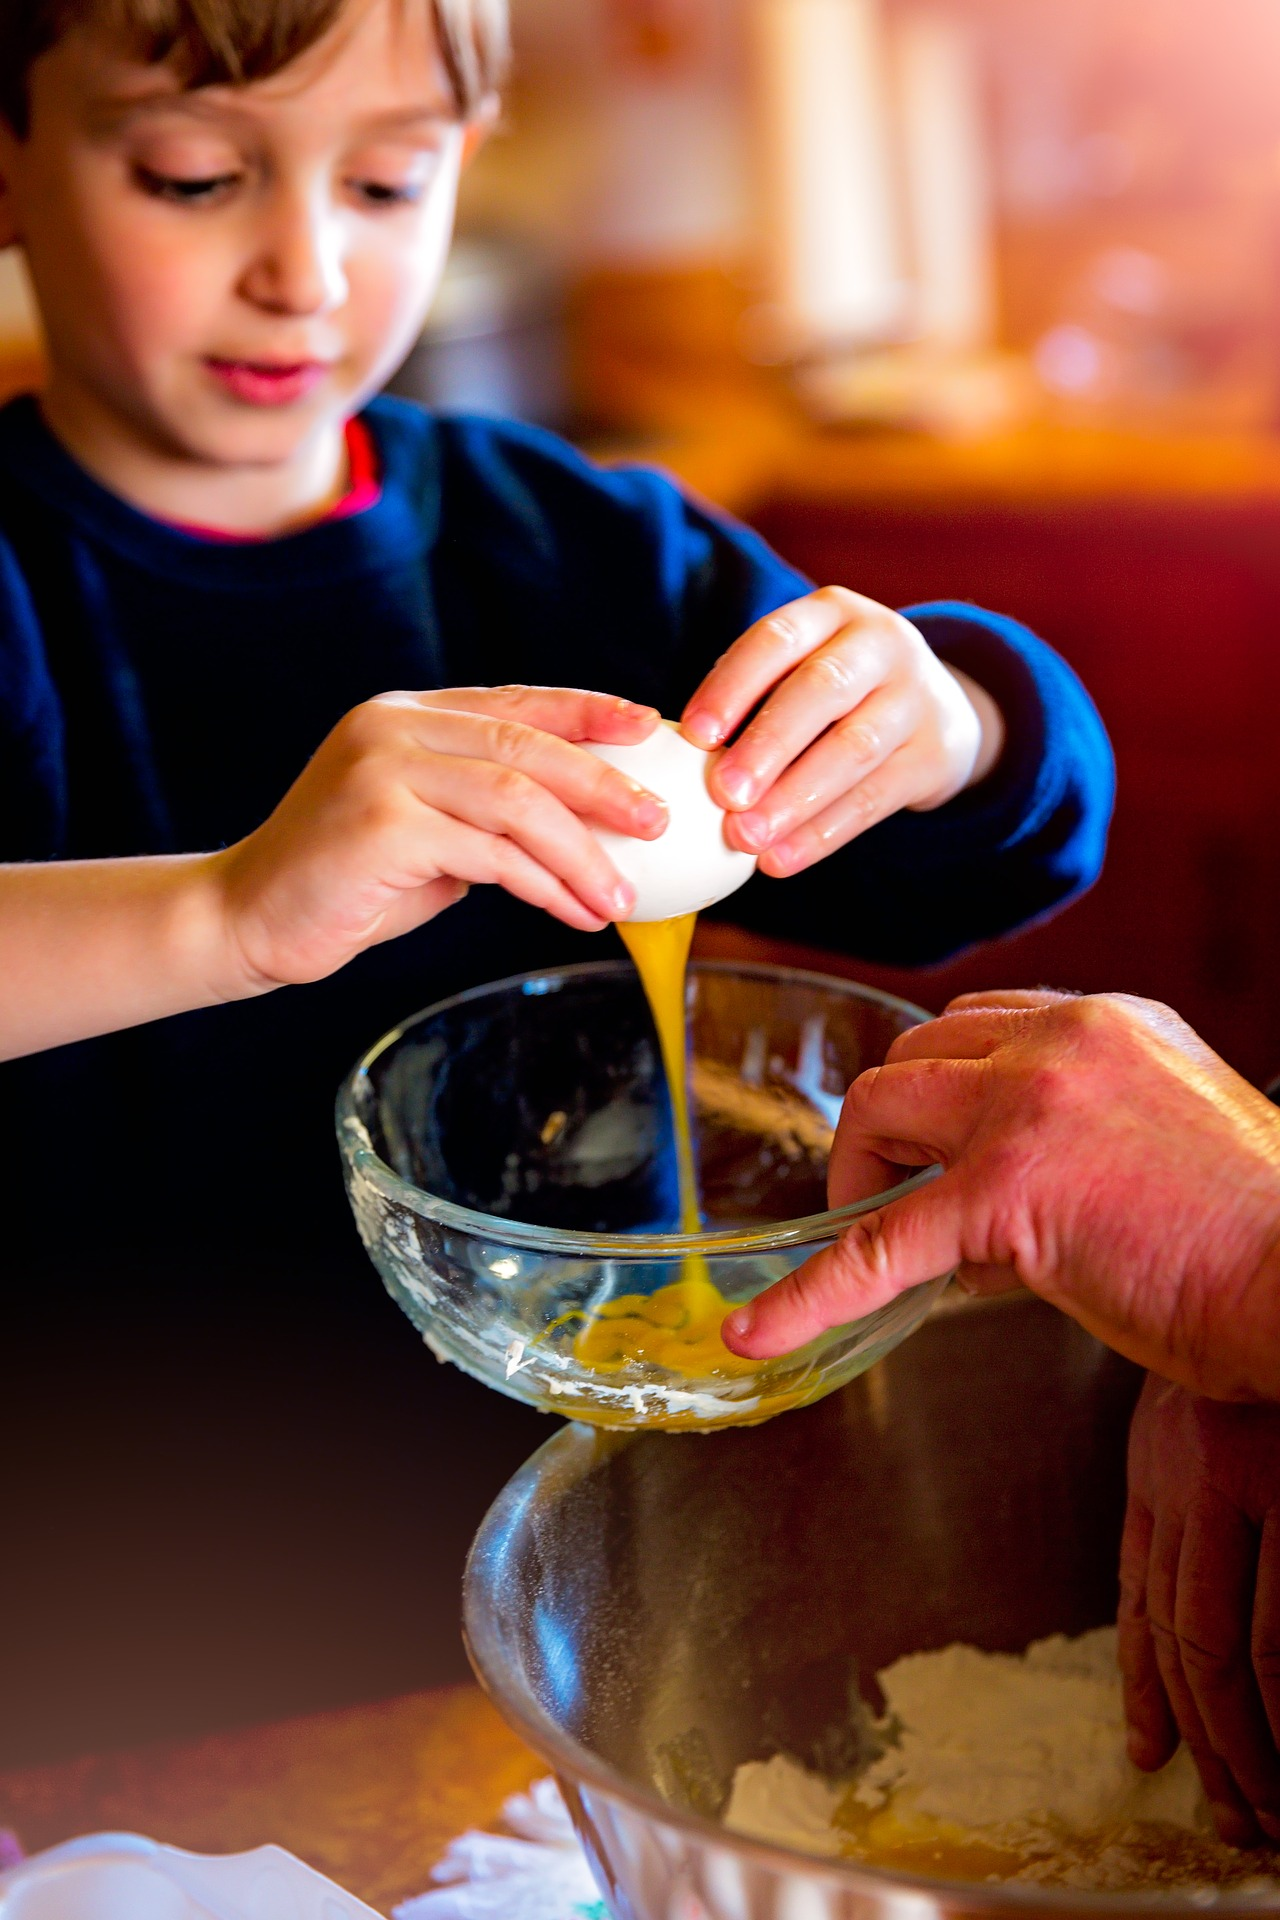 a boy holds on to both ends of an egg with his hands while the egg yolk oozes out of the middle of the egg an into a bowl